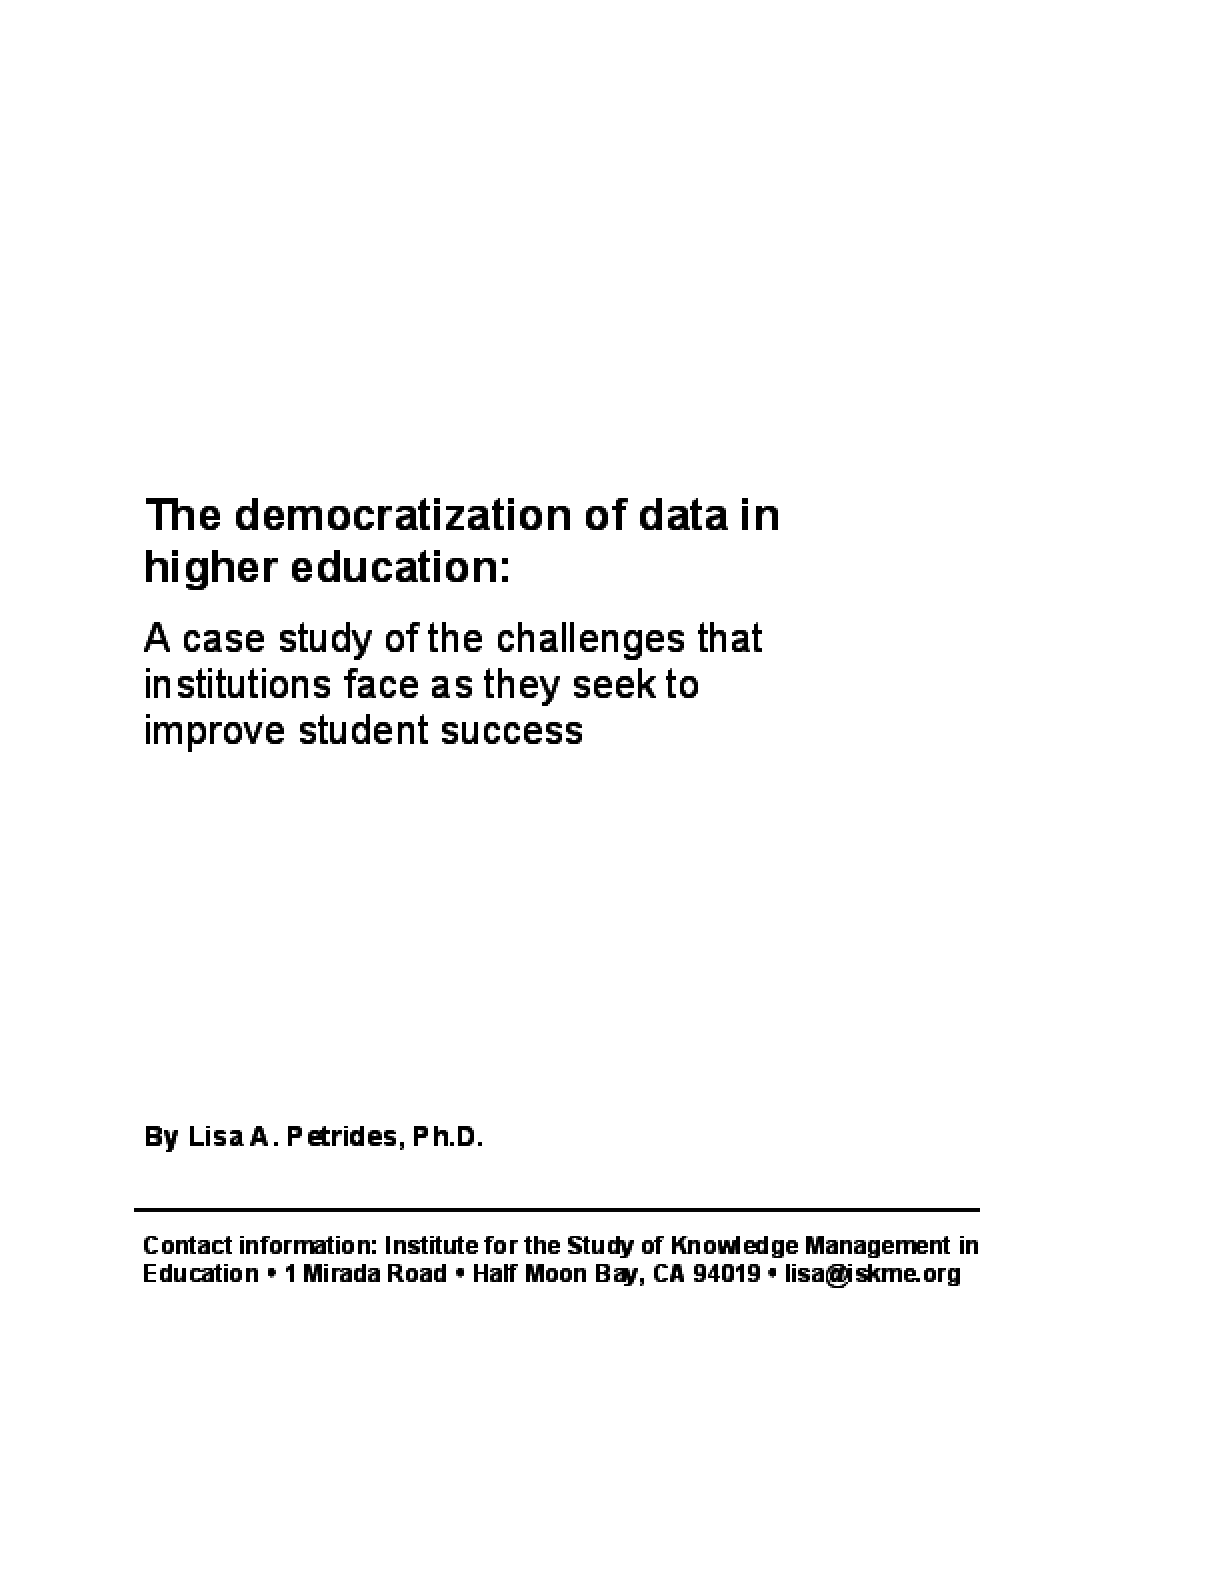 The Democratization of Data in Higher Education: A Case Study of the Challenges that Institutions Face as They Seek to Improve Student Success